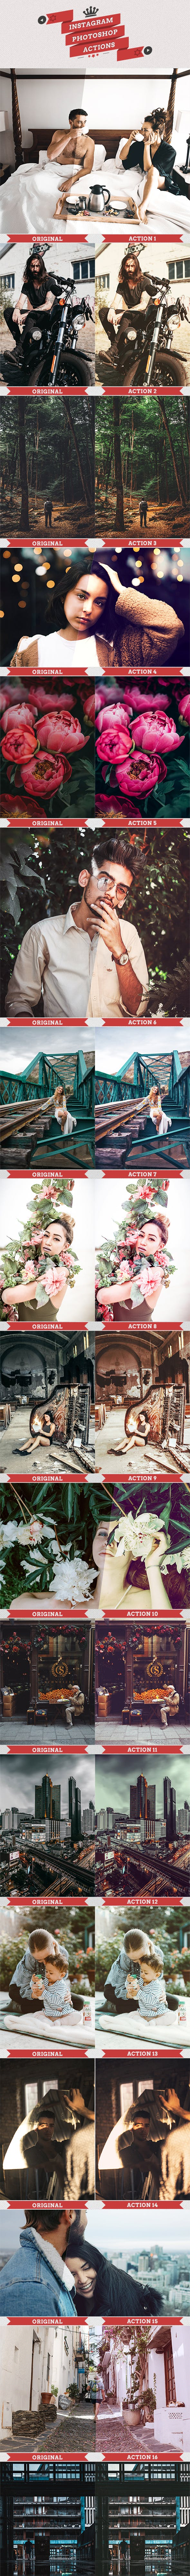 25 Instagram Filters Photoshop Actions - Photo Effects Actions